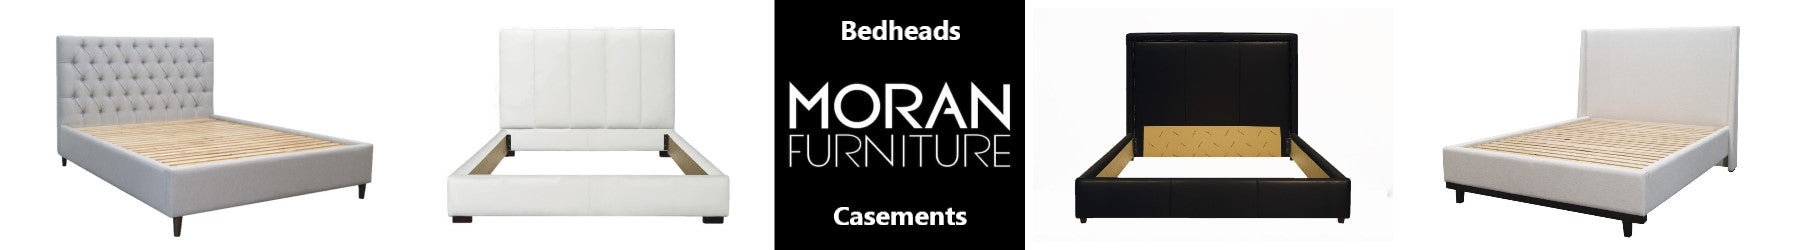 Moran Furniture Bed Heads and Casements